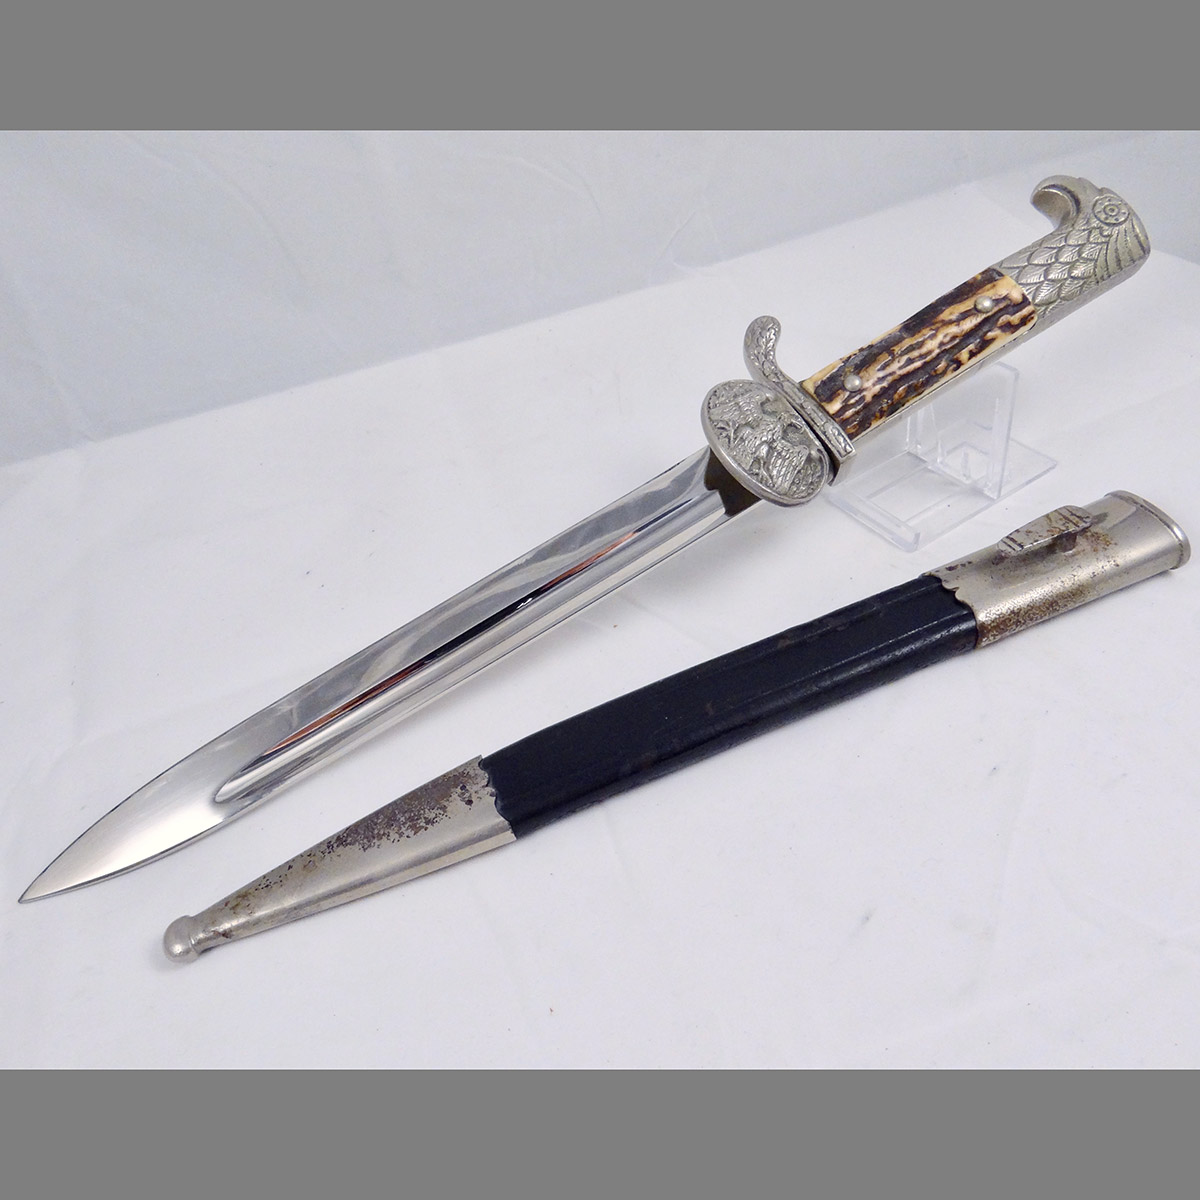 RARE Land Customs (Zolldienst) Clamshell Dress Bayonet with Stag Grip by Clemen & Jung